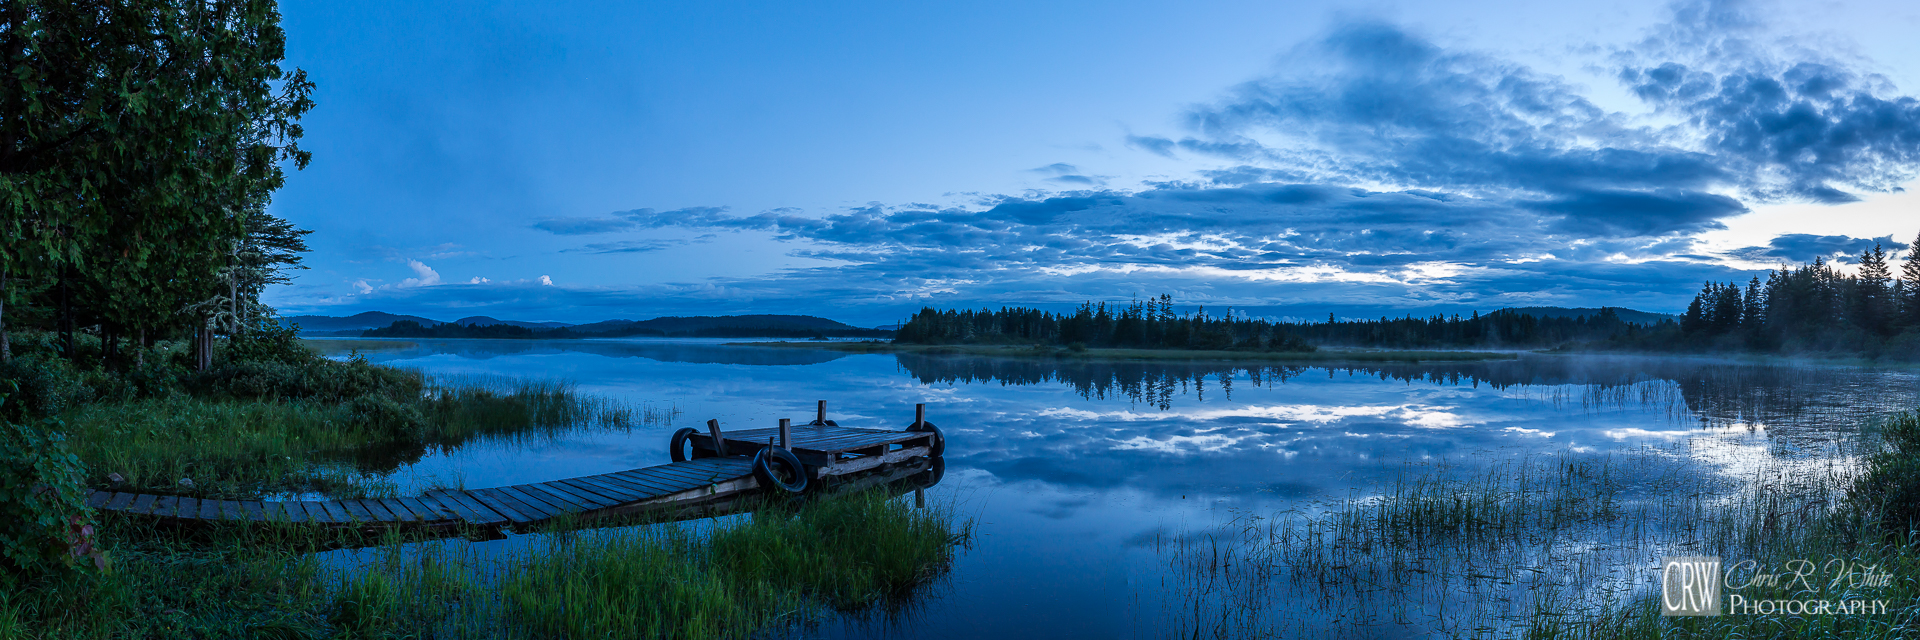 Before sunrise at our remote North Woods campsite.   -Click Image for Larger View-